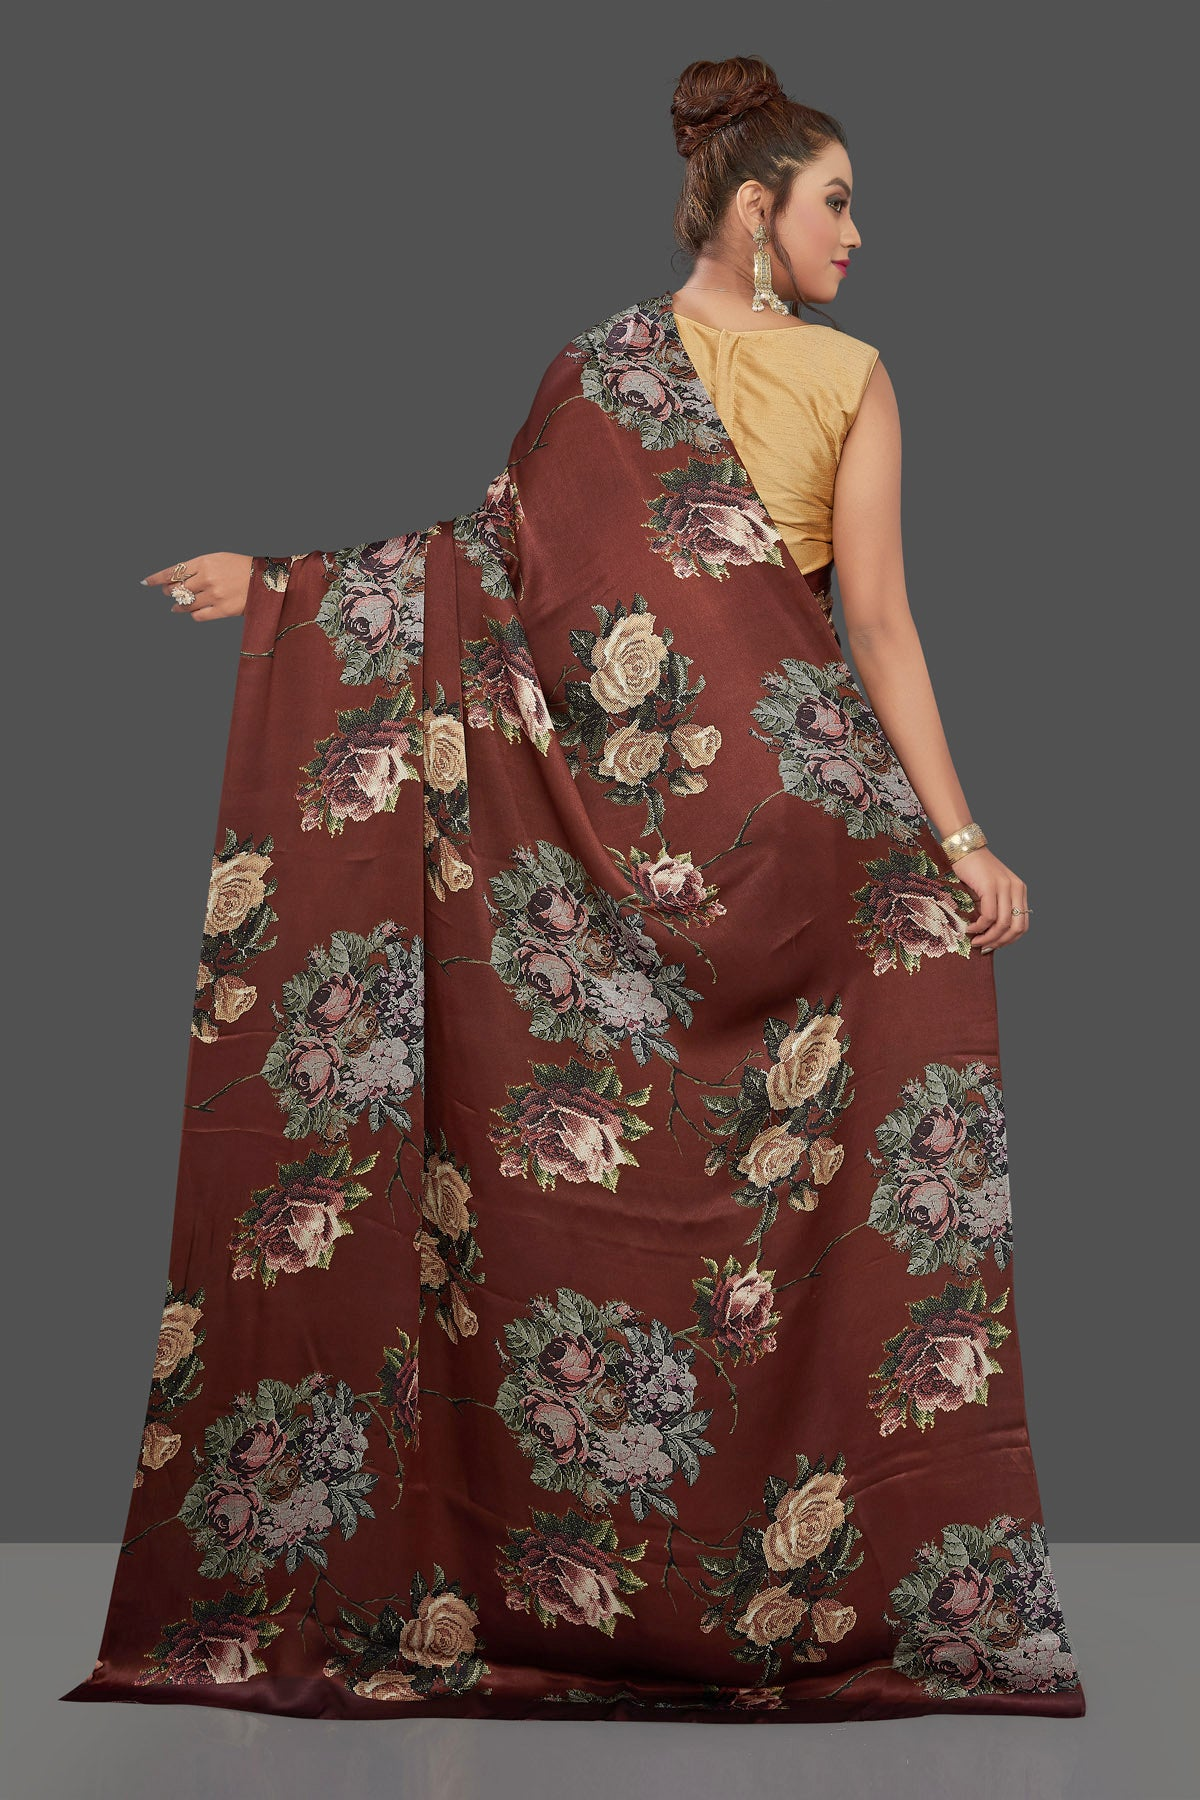 Buy gorgeous brown floral print crepe silk sari online in USA. Shop for weddings and special occasions stunning crepe sarees, printed saris, georgette sarees, designer sarees in USA from Pure Elegance Indian clothing store in USA. Shop online now.-back